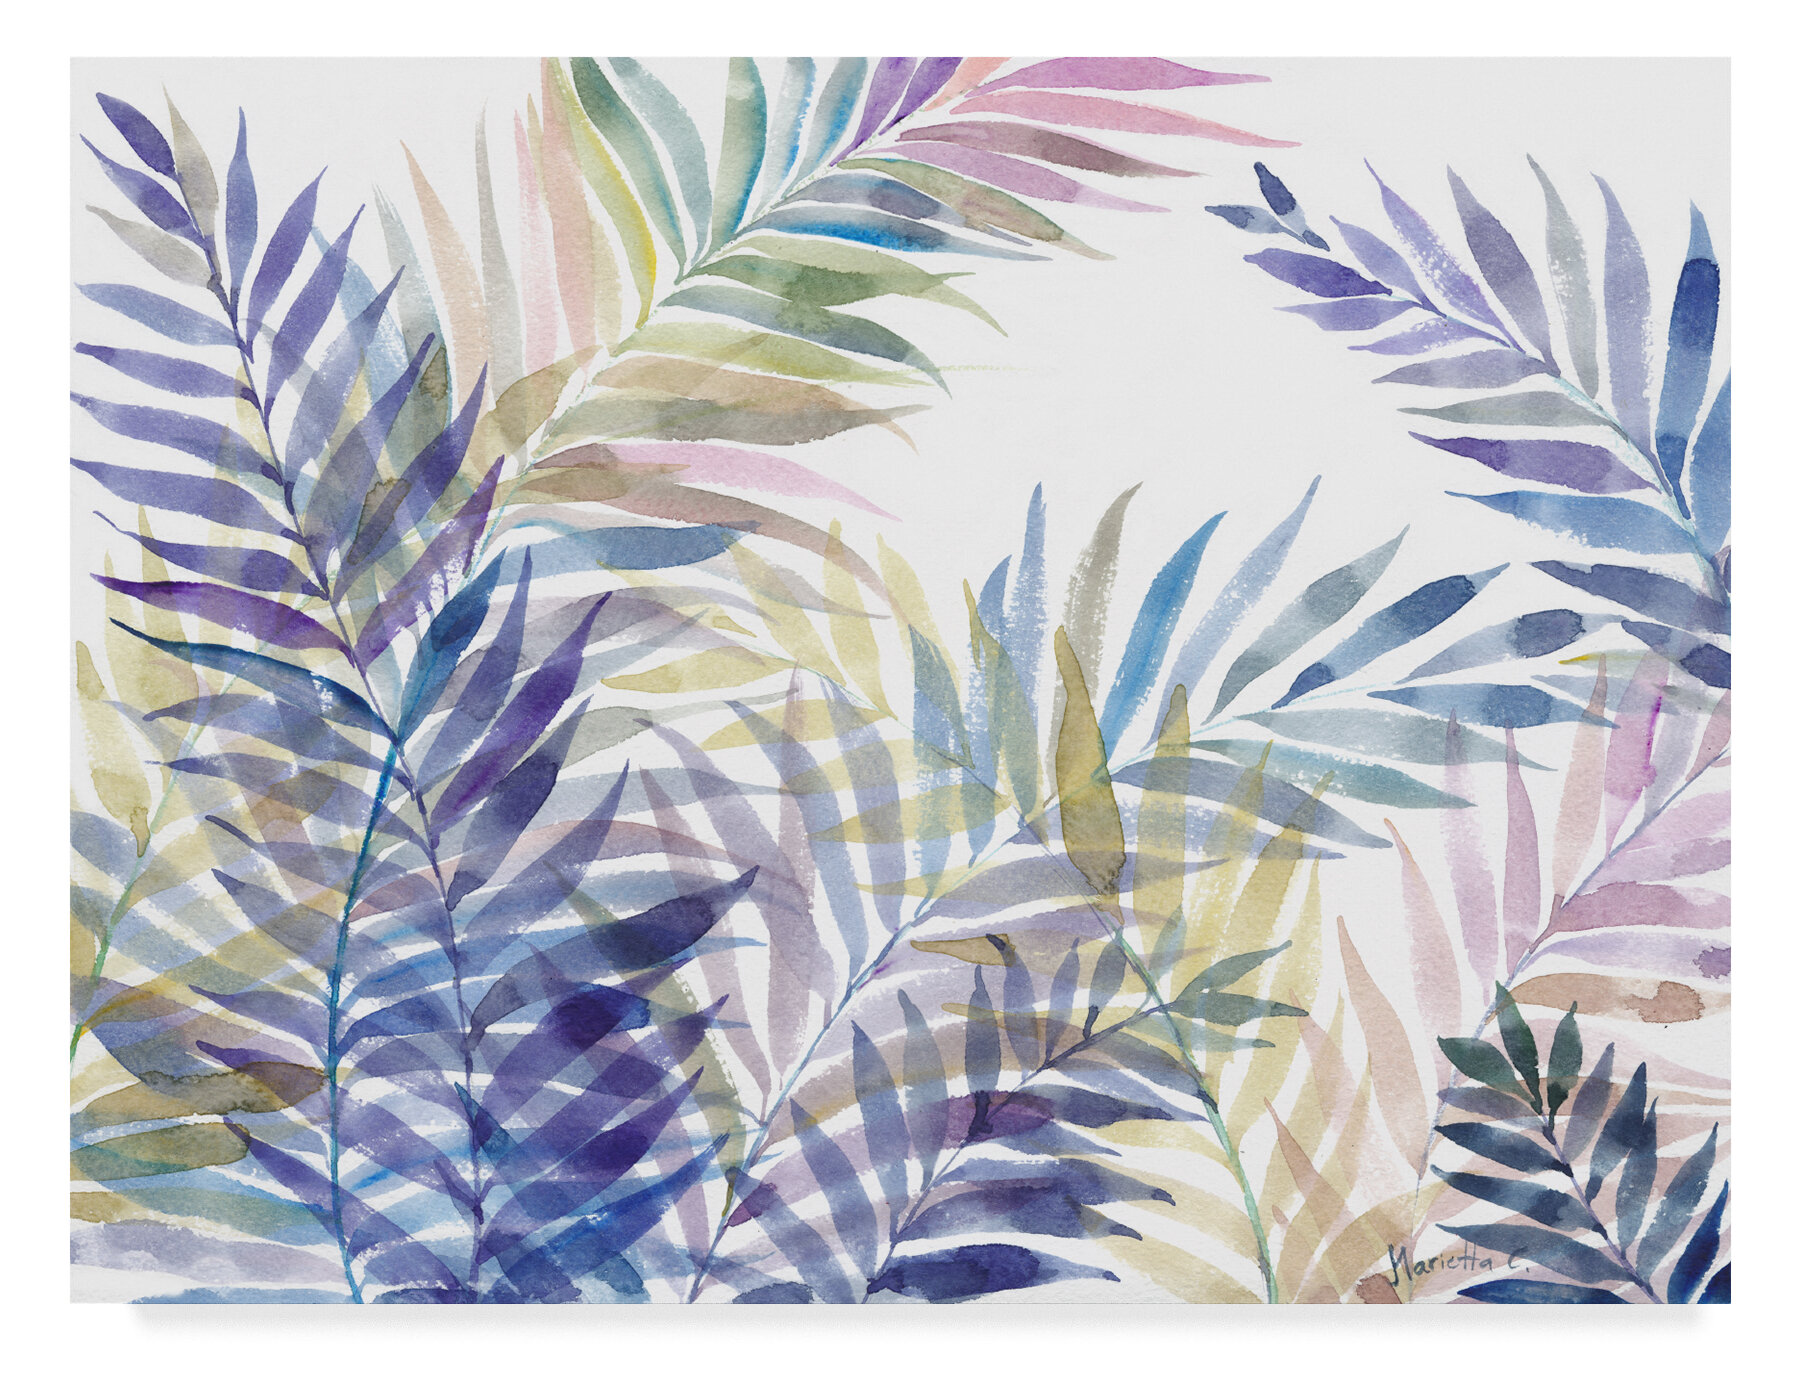 Bay Isle Home Tropical Leaves Acrylic Painting Print On Wrapped Canvas Wayfair Thank you very much for making it easy to follow and not overwhelming with unnecessary words 🙂. tropical leaves acrylic painting print on wrapped canvas